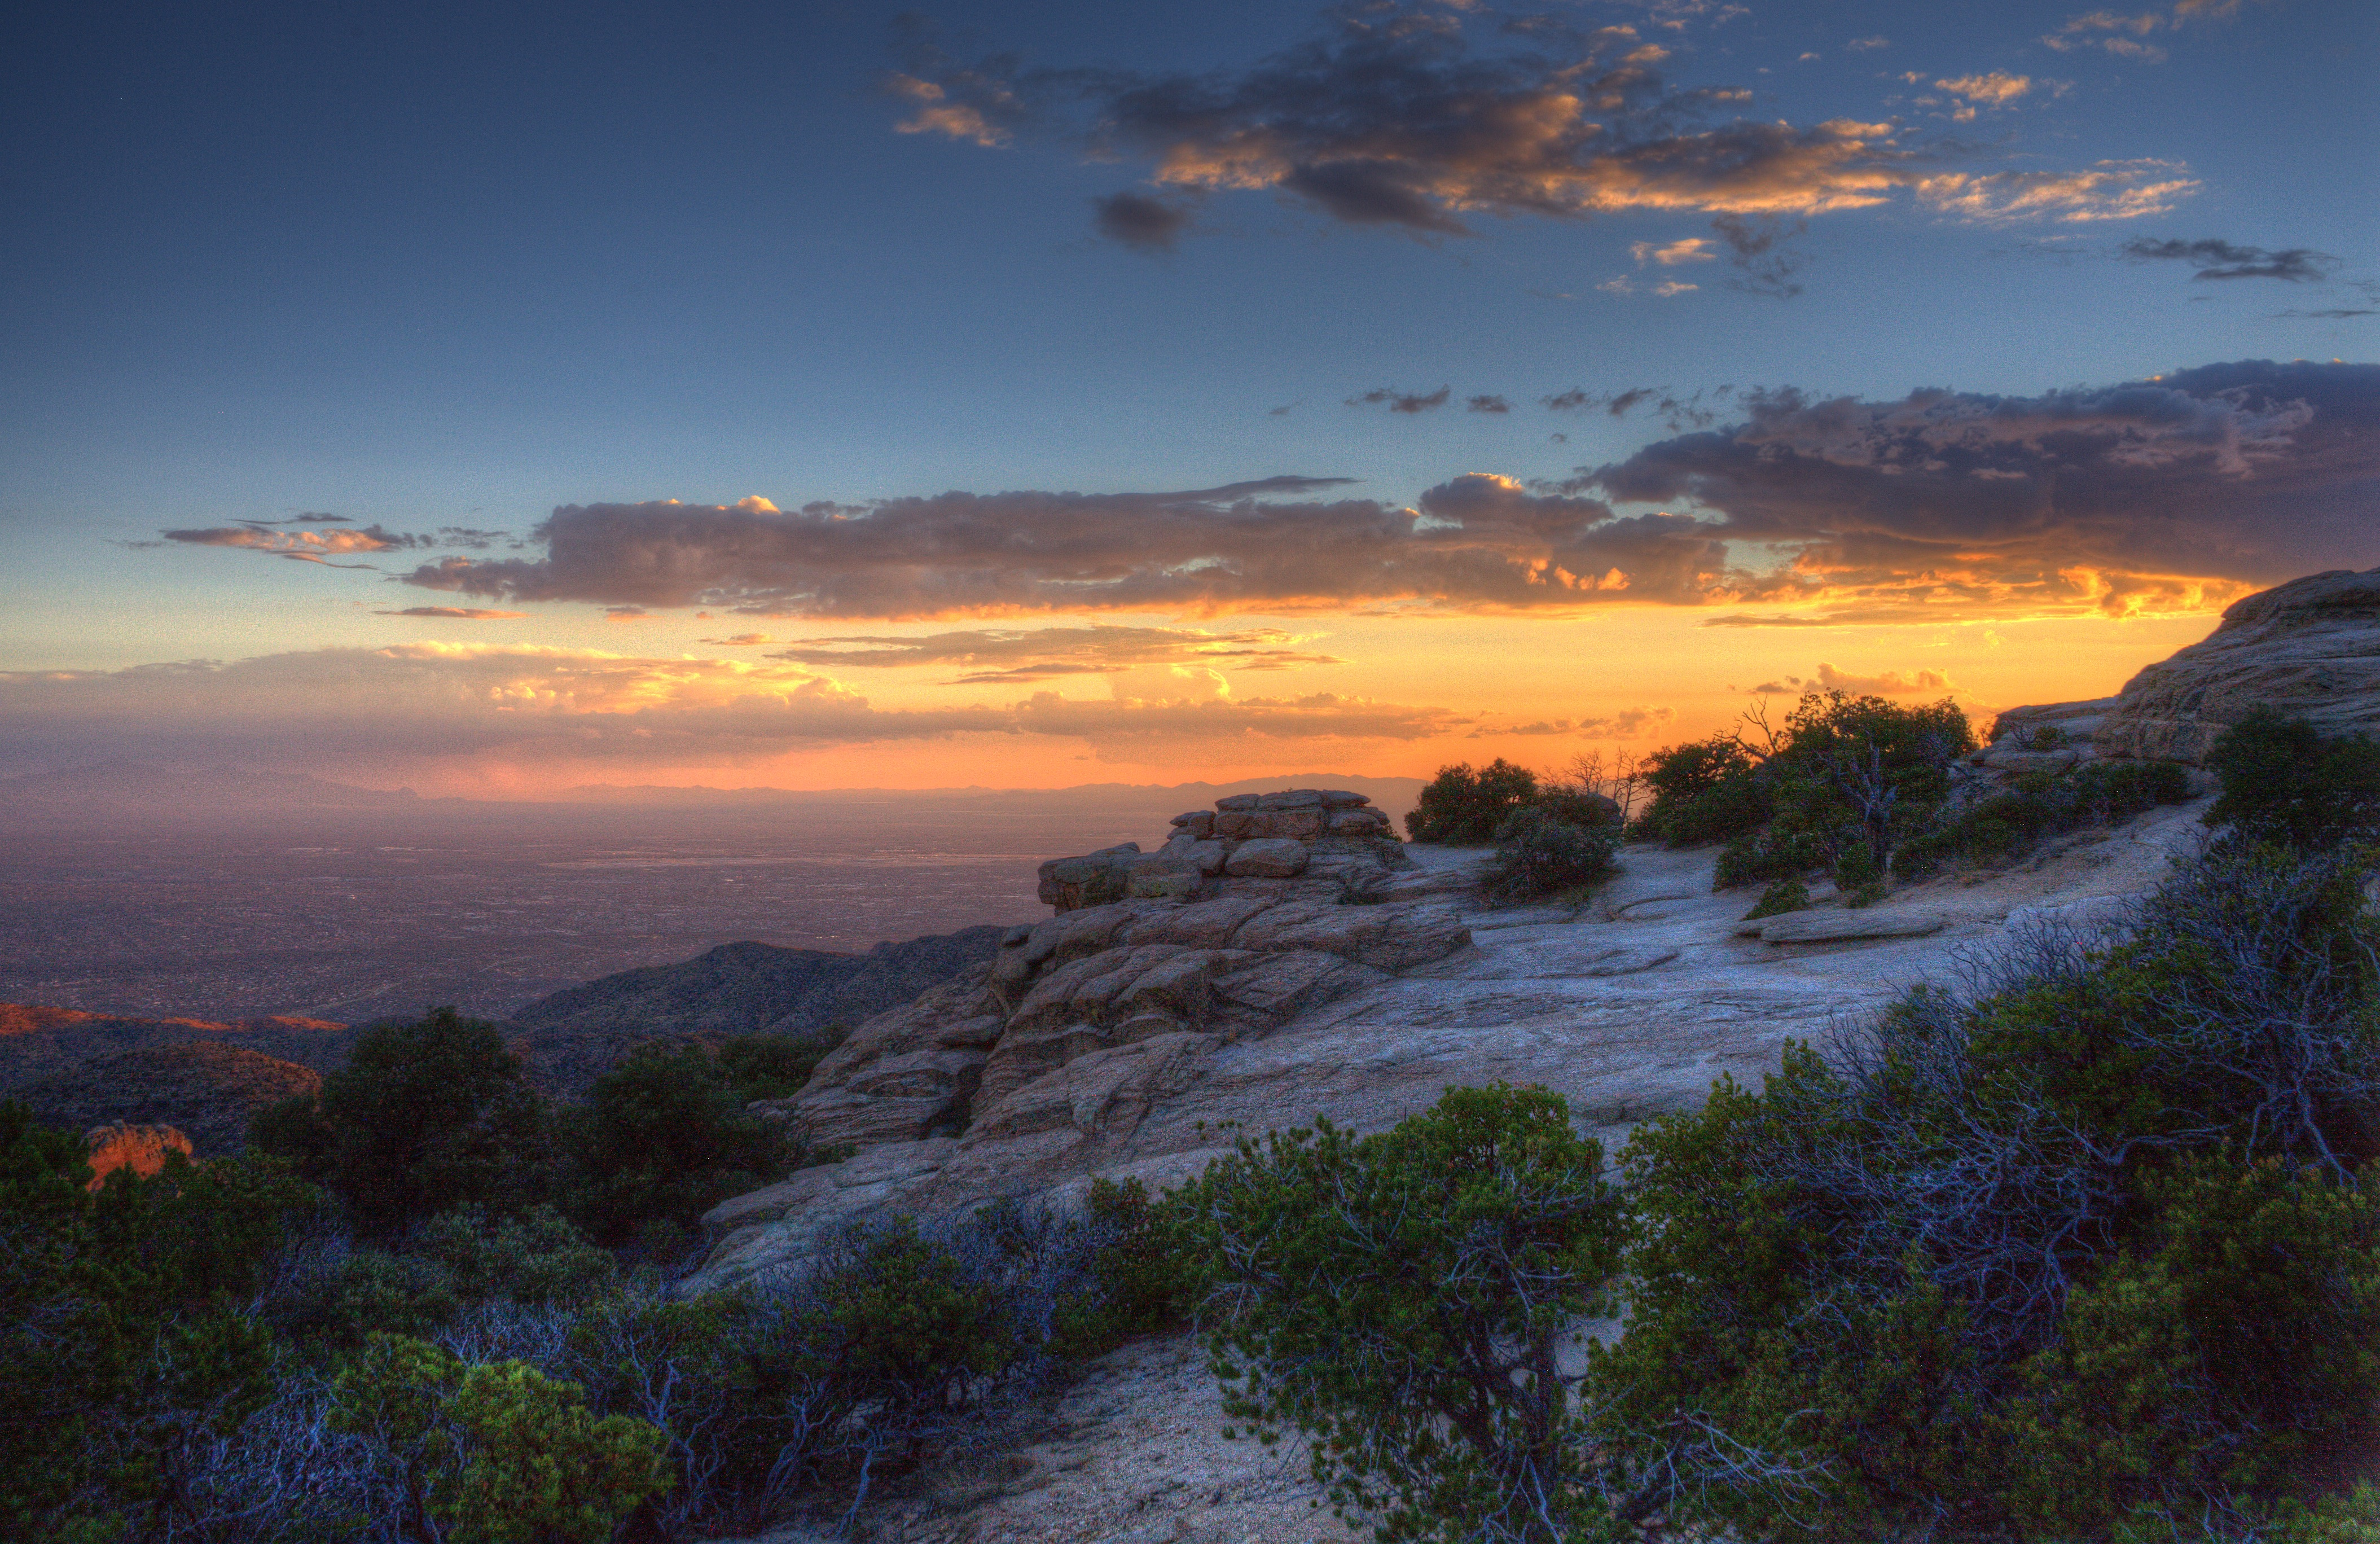 mount lemmon senior dating site Recent archaeological excavations near the santa cruz river have located a village site dating from 2100 bc mount lemmon, the southernmost ski.